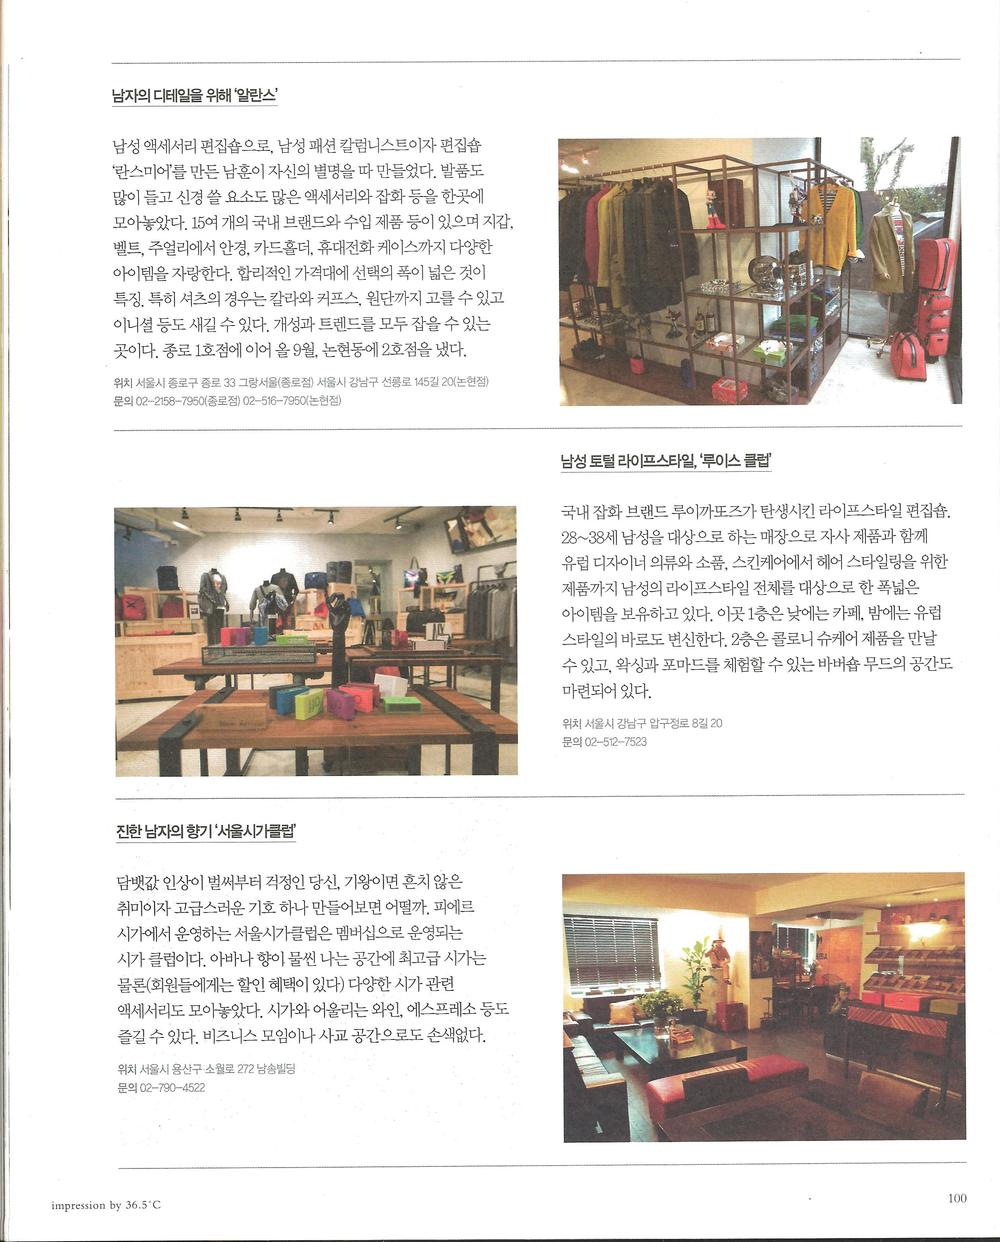 2014-11 Lotte card impression article 1.jpg